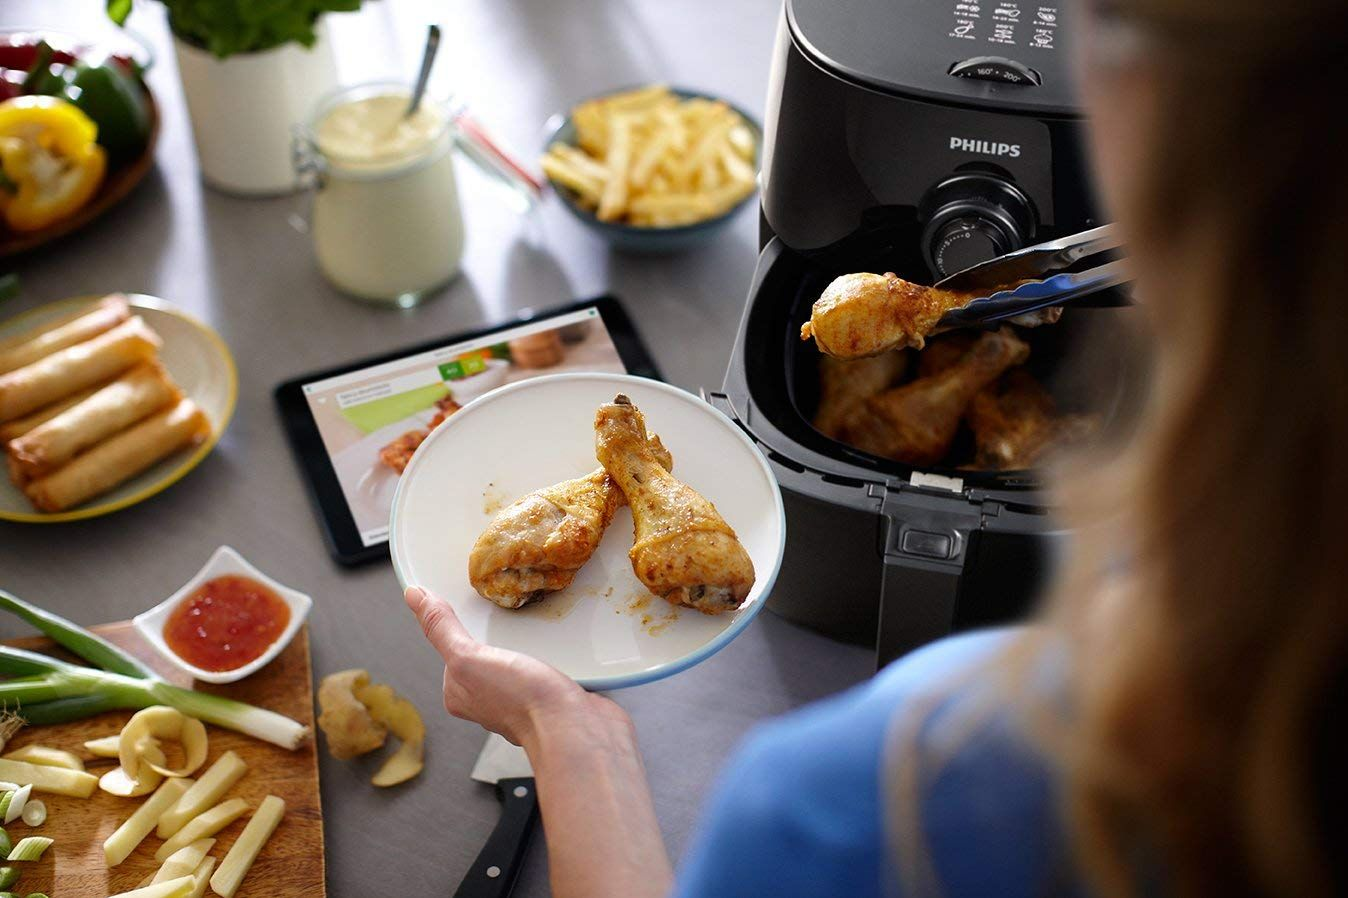 Philips HD9621/26 Viva Turbo star Air fryer